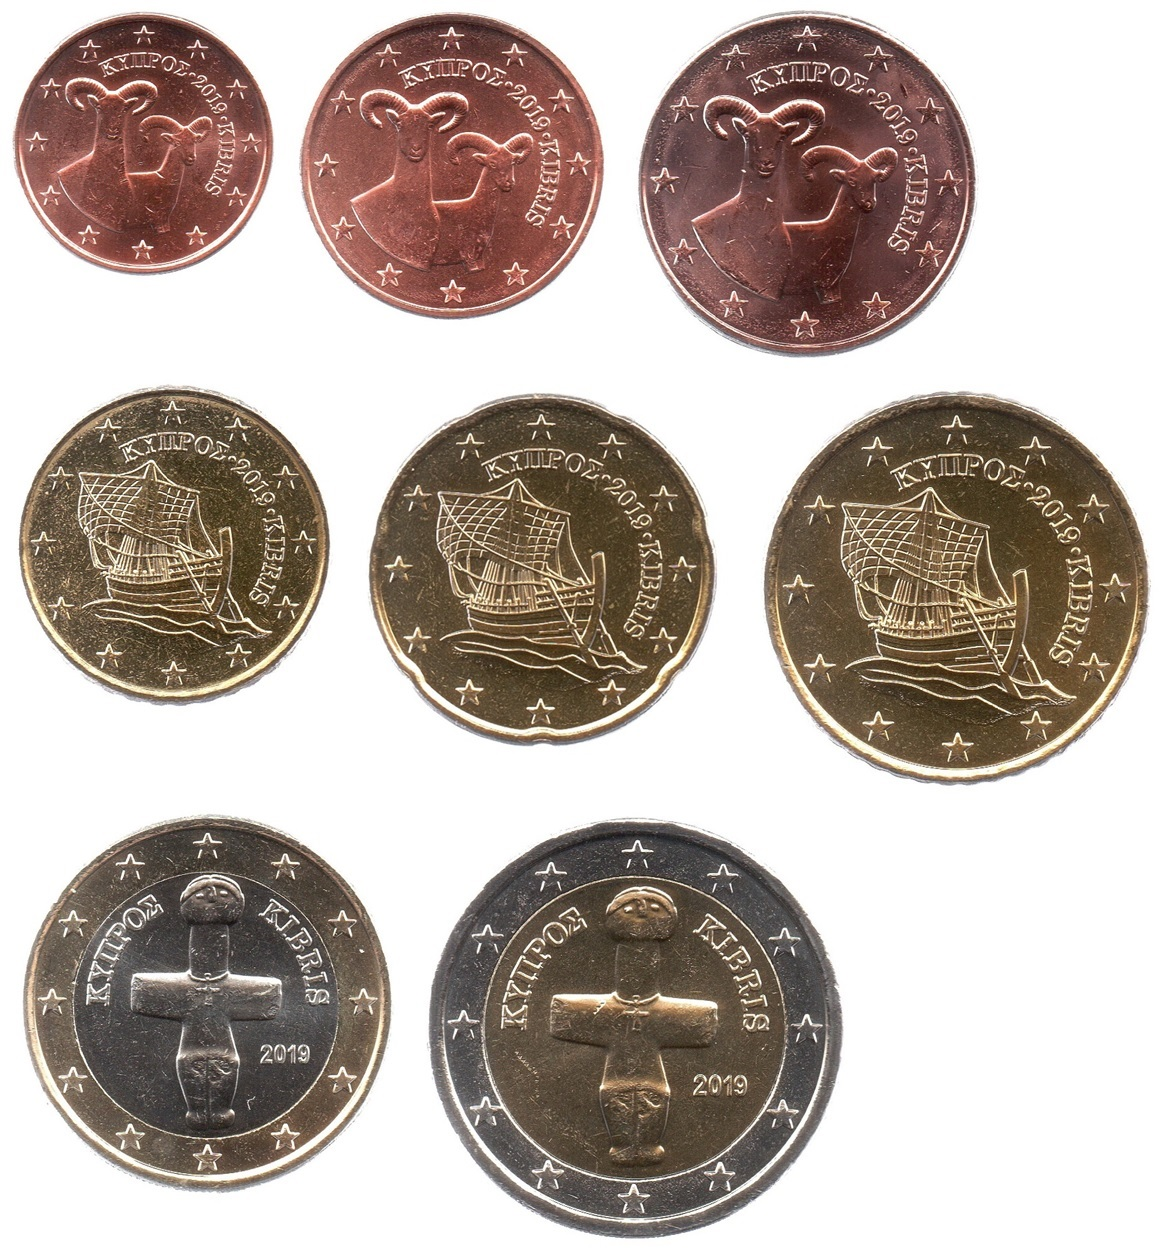 (LOT.EUR04.001to200.2019.1.spl.000000002) Complete series from 1 cent to 2 euro Cyprus 2019 Obverses (zoom)